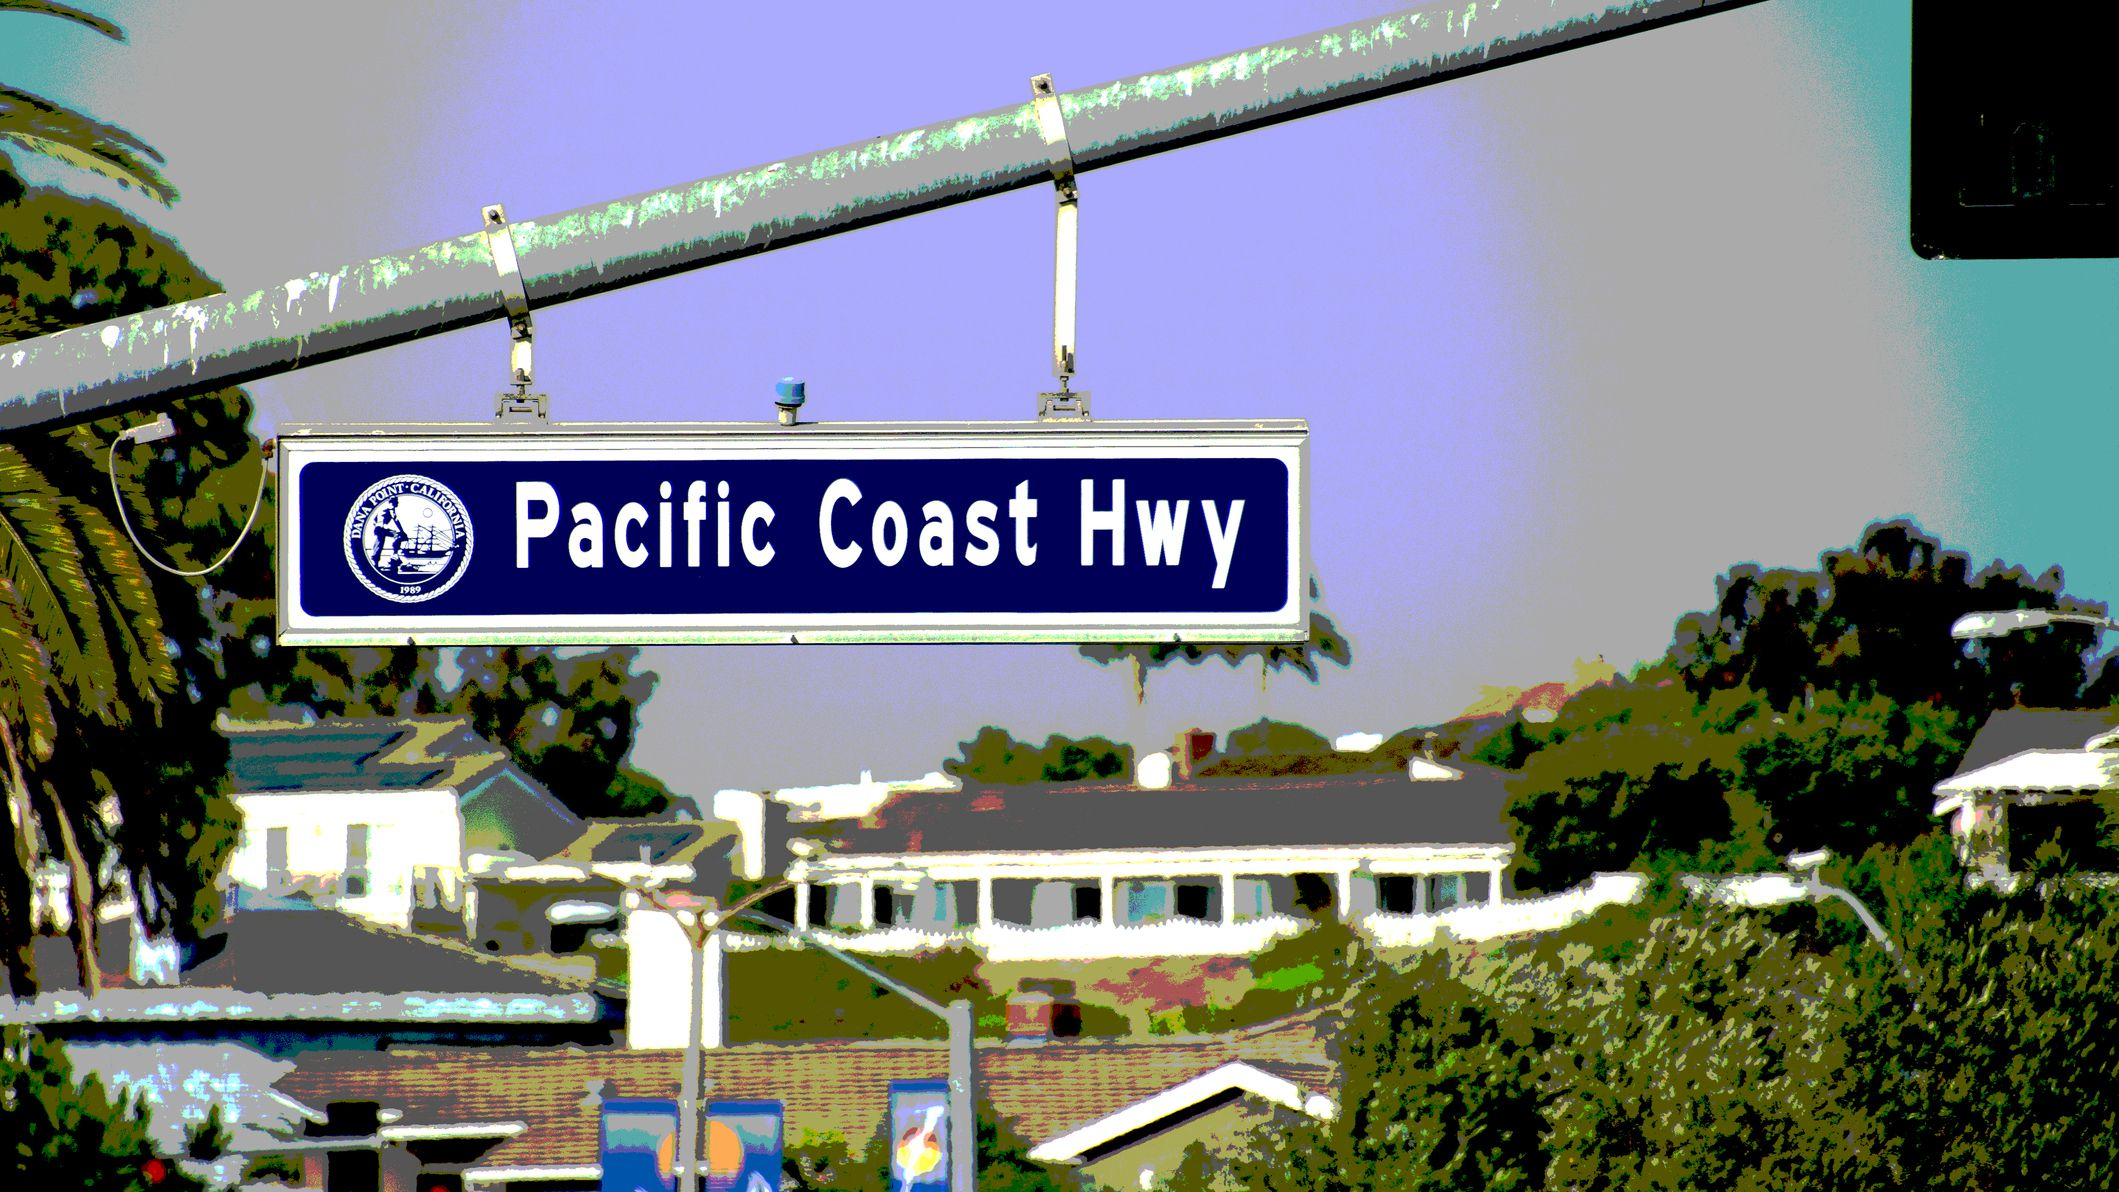 Drive the Pacific Coast Highway in Southern California on pch malibu, pch southern california, pch ca, pch big sur, pch newport, pch orange county, pch san diego, pch topanga, pch ventura county, pch laguna beach, pch los angeles, pch pacific coast, pch san francisco,